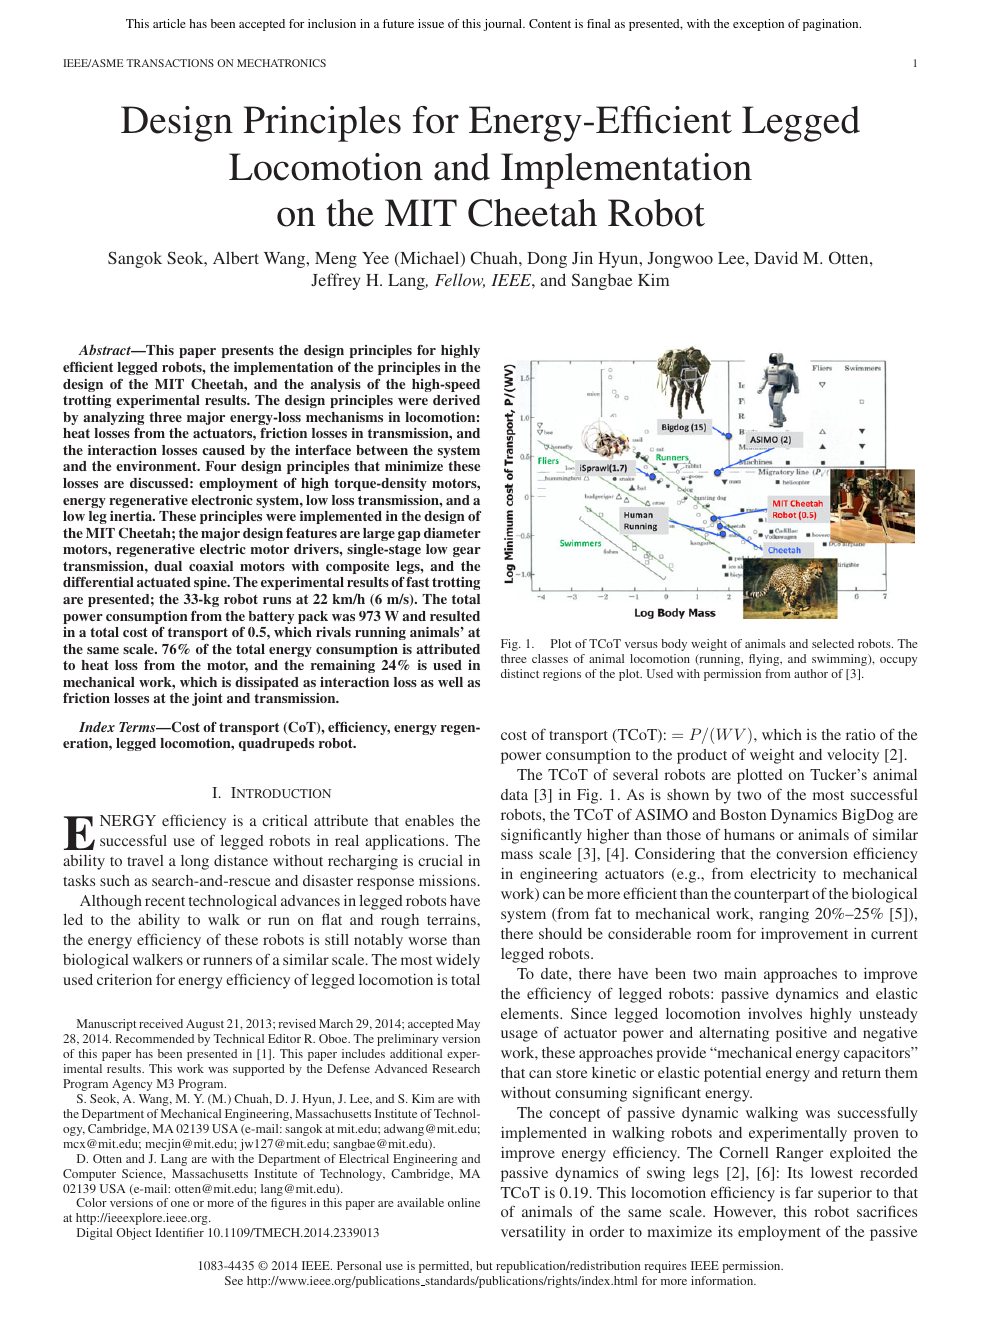 Design Principles For Energy Efficient Legged Locomotion And Implementation On The Mit Cheetah Robot Topic Of Research Paper In Mechanical Engineering Download Scholarly Article Pdf And Read For Free On Cyberleninka Open